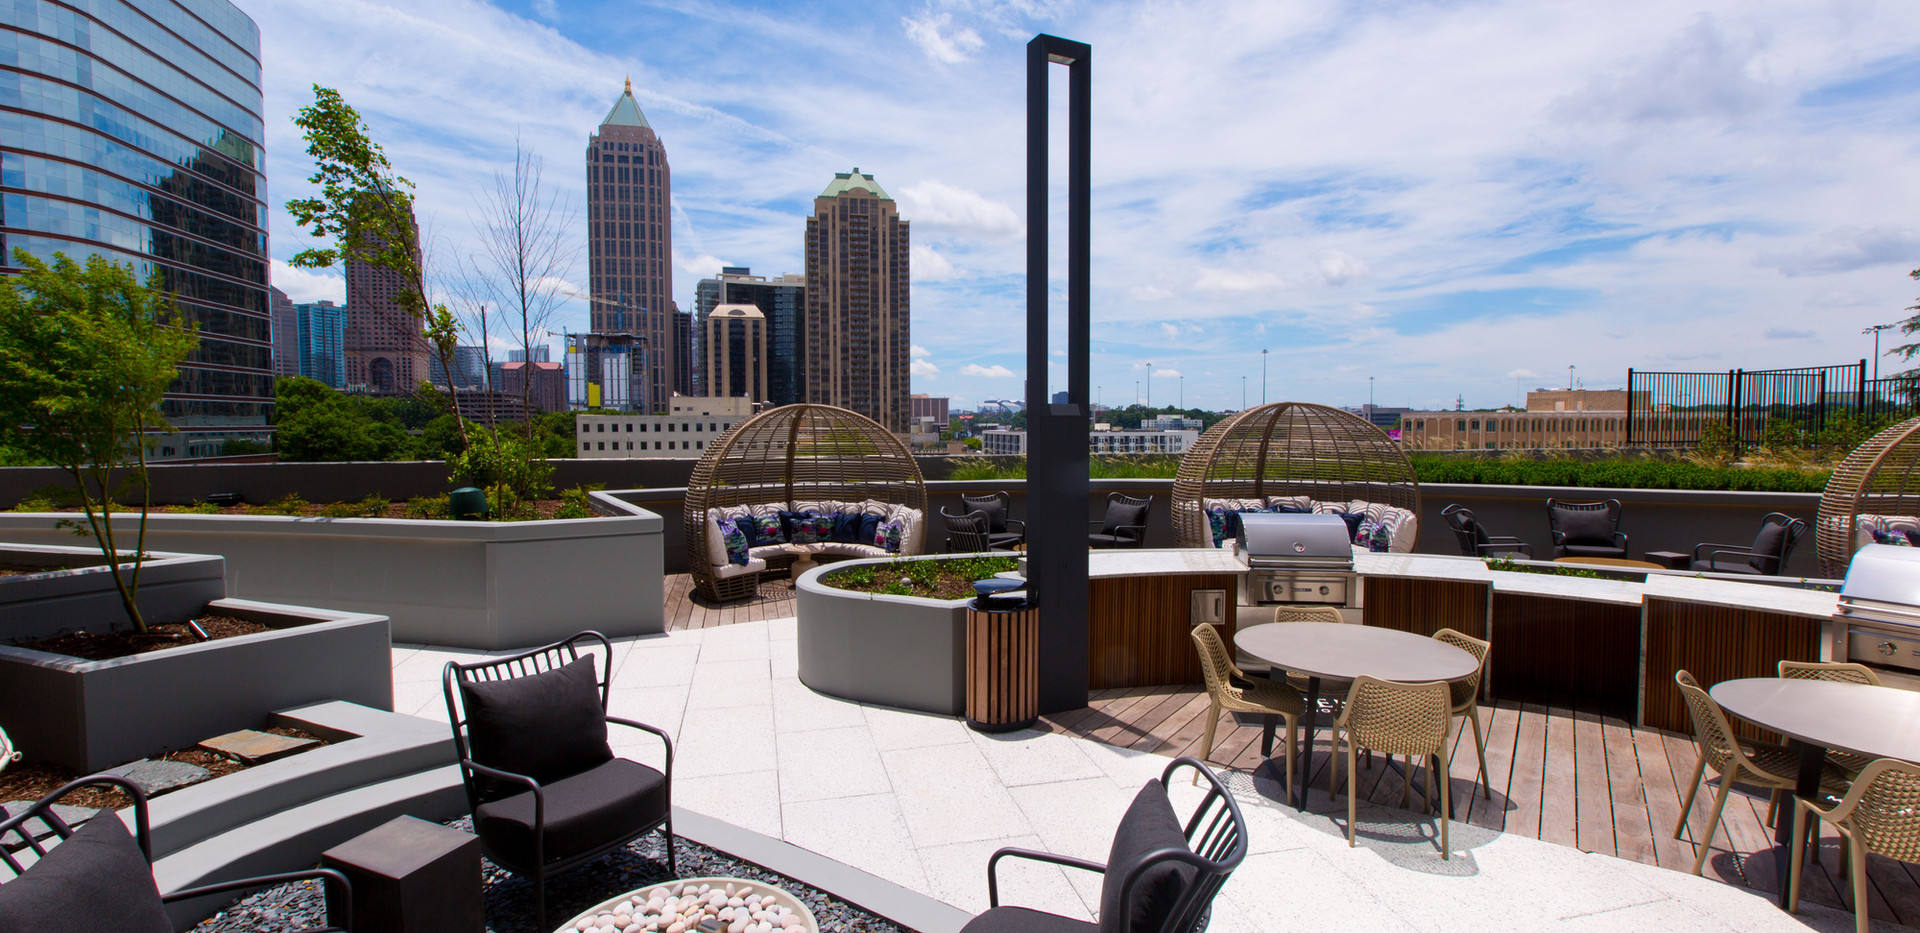 Paver Roof Deck Atlanta